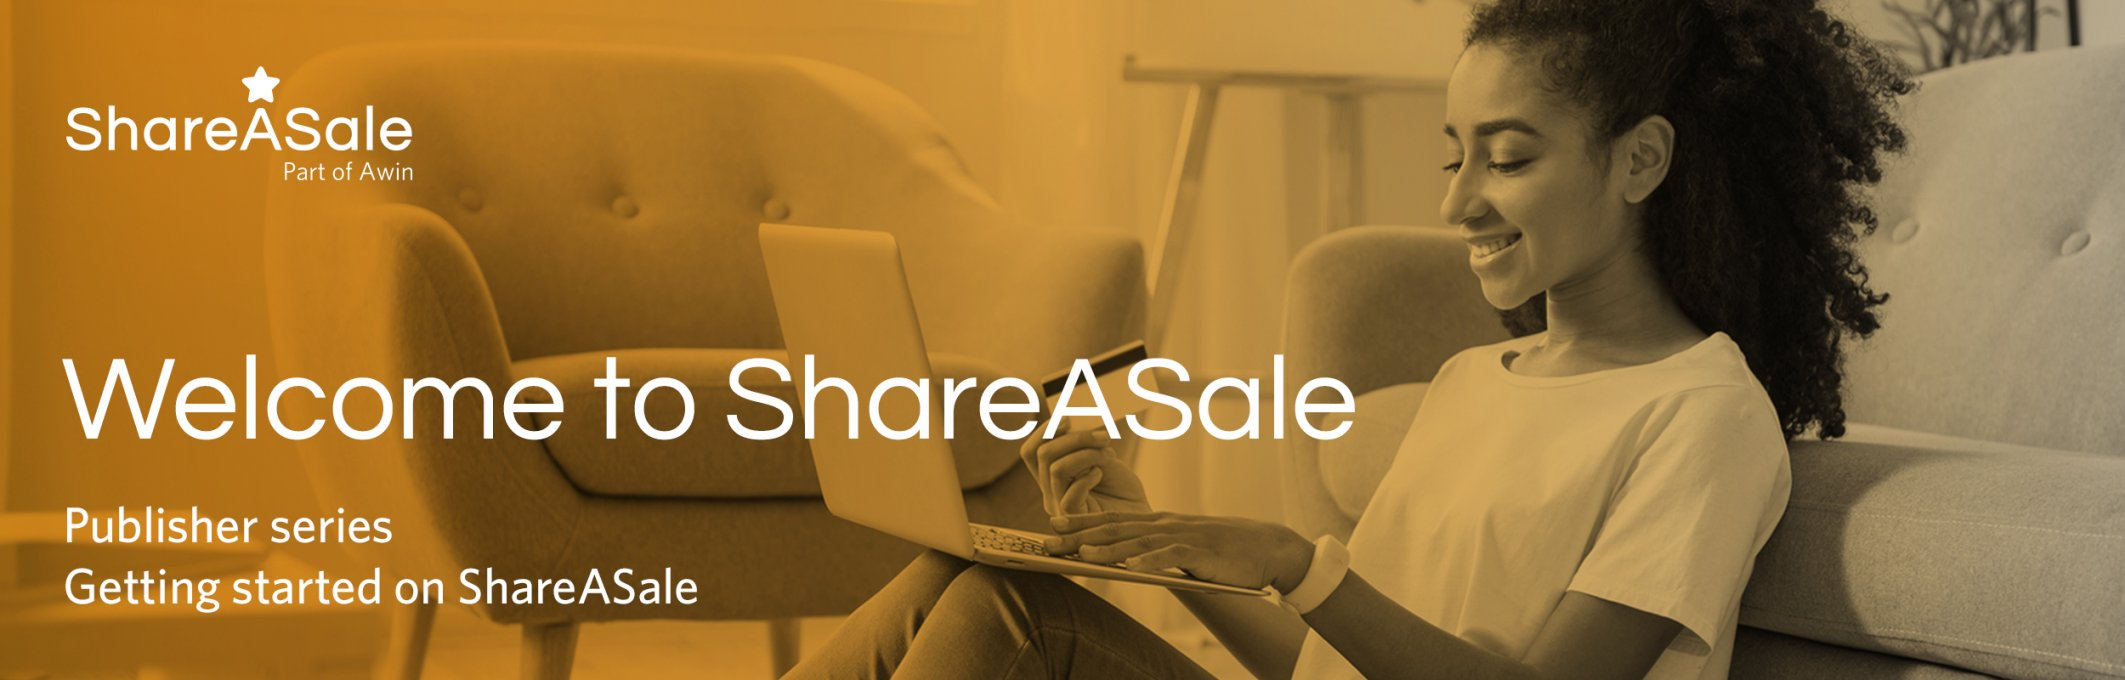 getting going on shareasale - Getting going on ShareASale